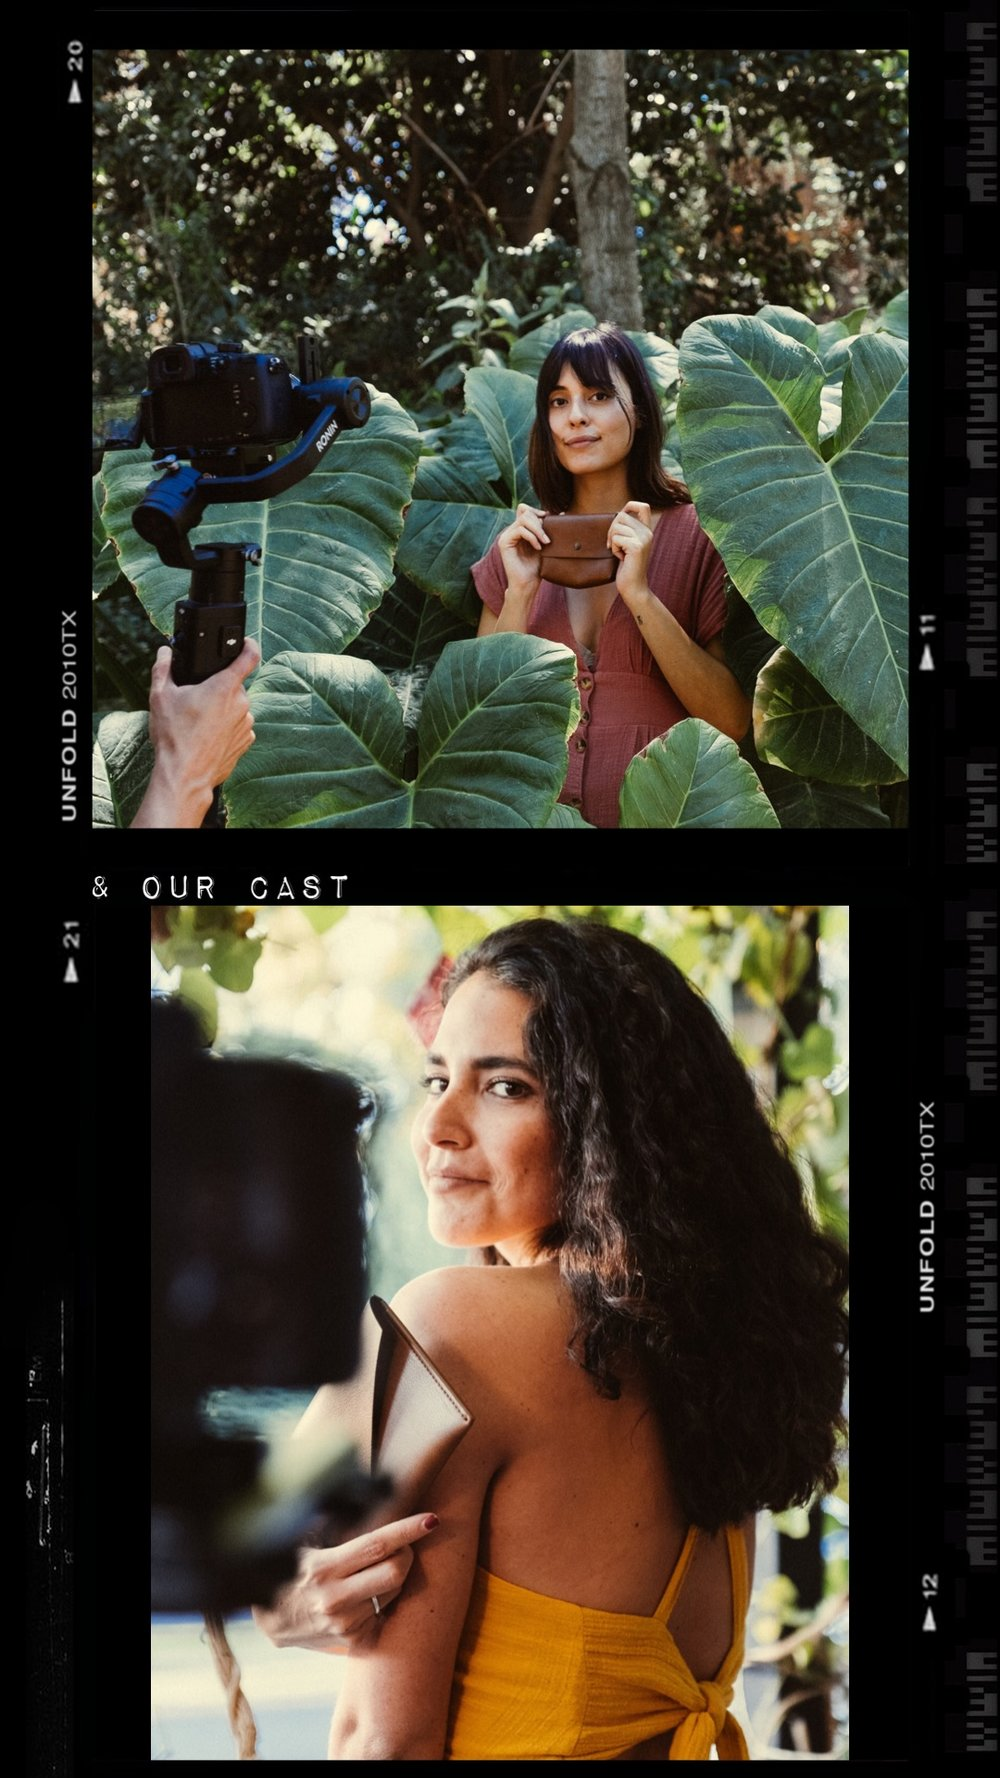 behind-the-scenes-wilo-summer-campaign-dstn-analog-photography-11.JPG